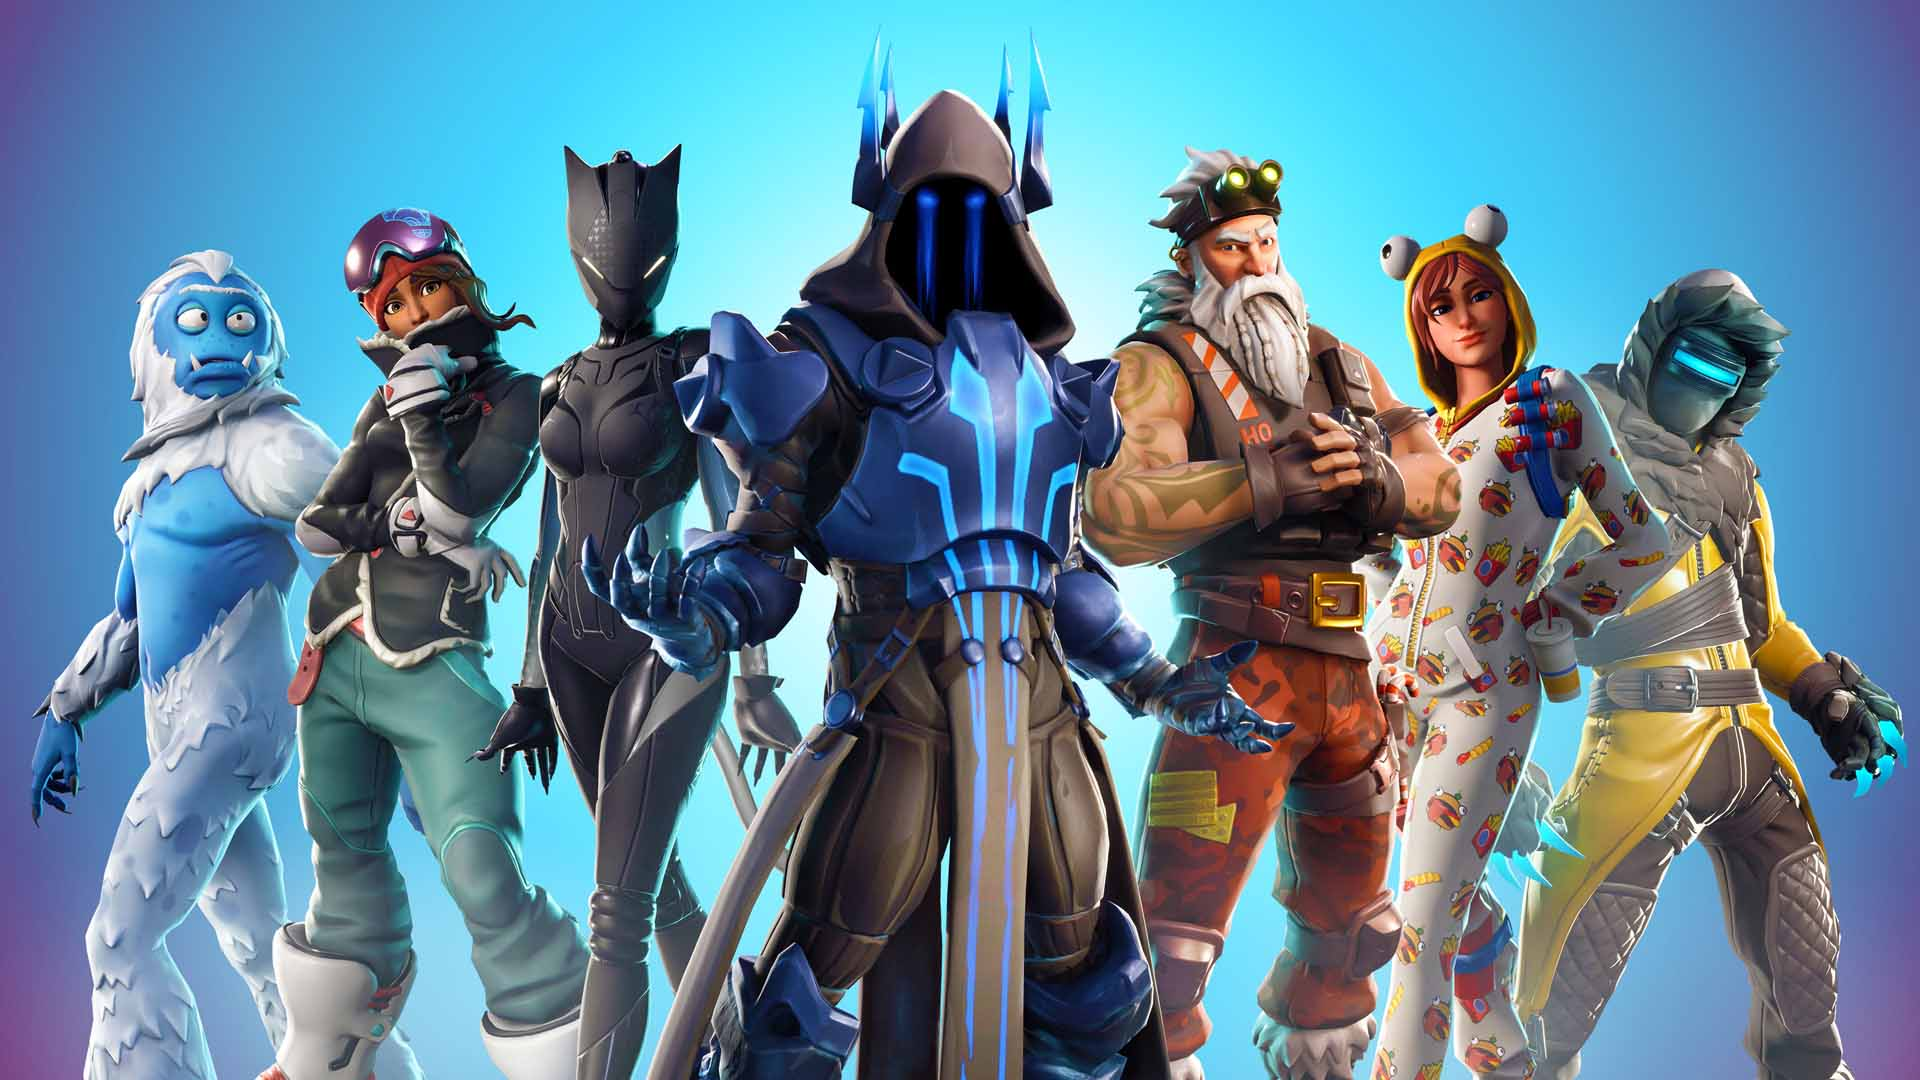 Fortnite Season 7 Geht An Den Start Venroxx Blog